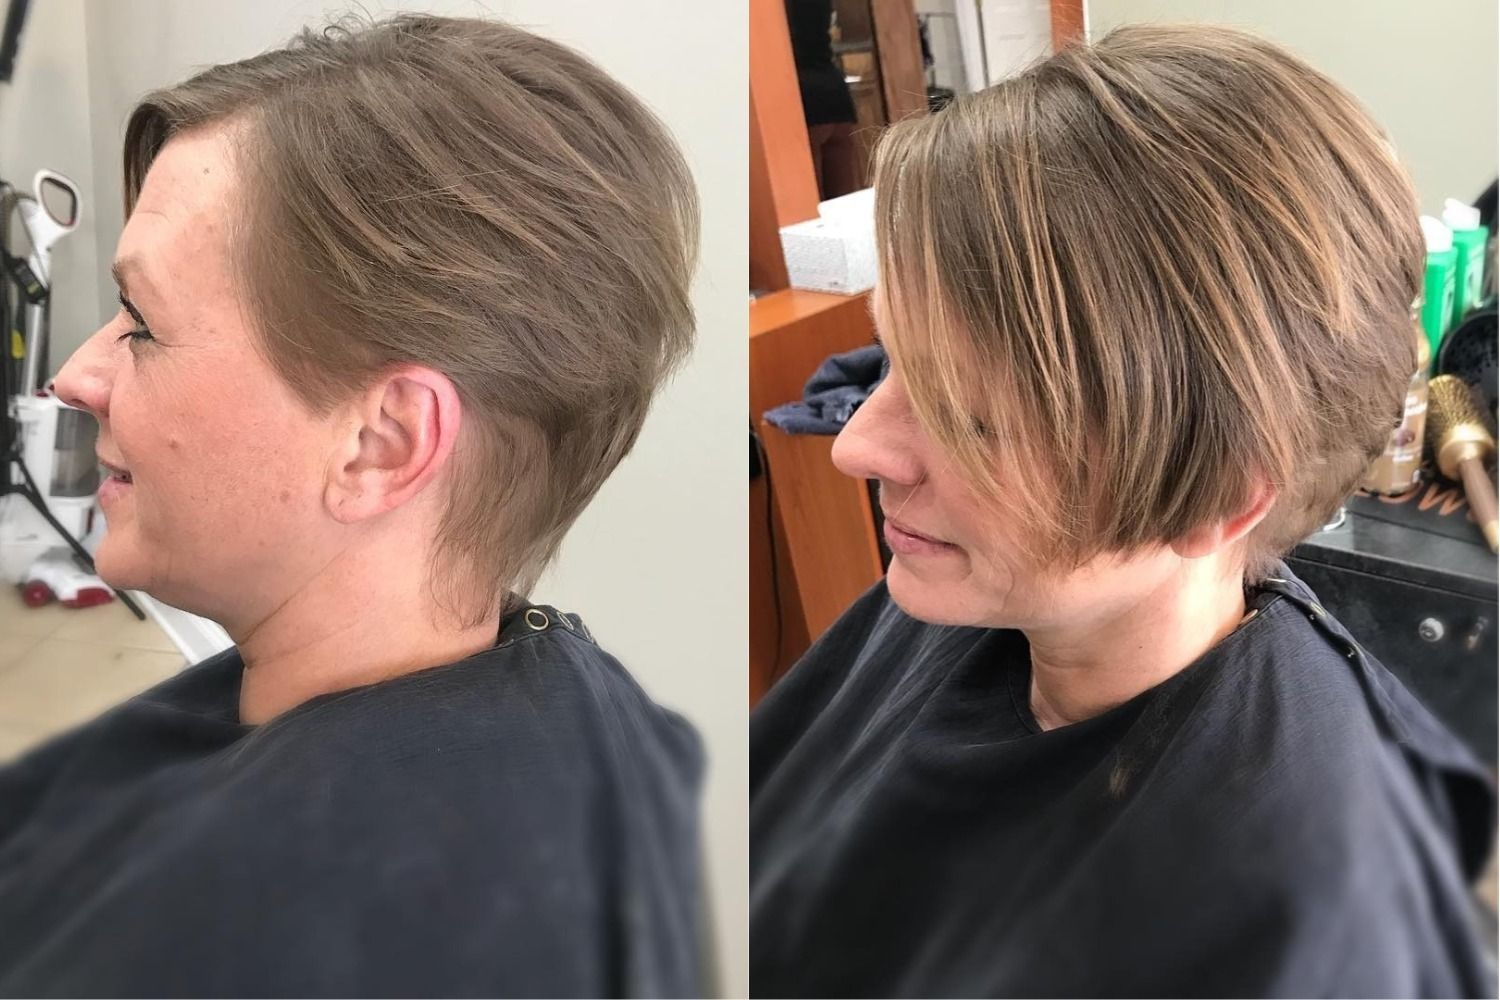 What Are The Best Hairstyles For Very Thin Hair Hair Adviser Hairstyles For Thin Hair Thin Fine Hair Extremely Thin Hair